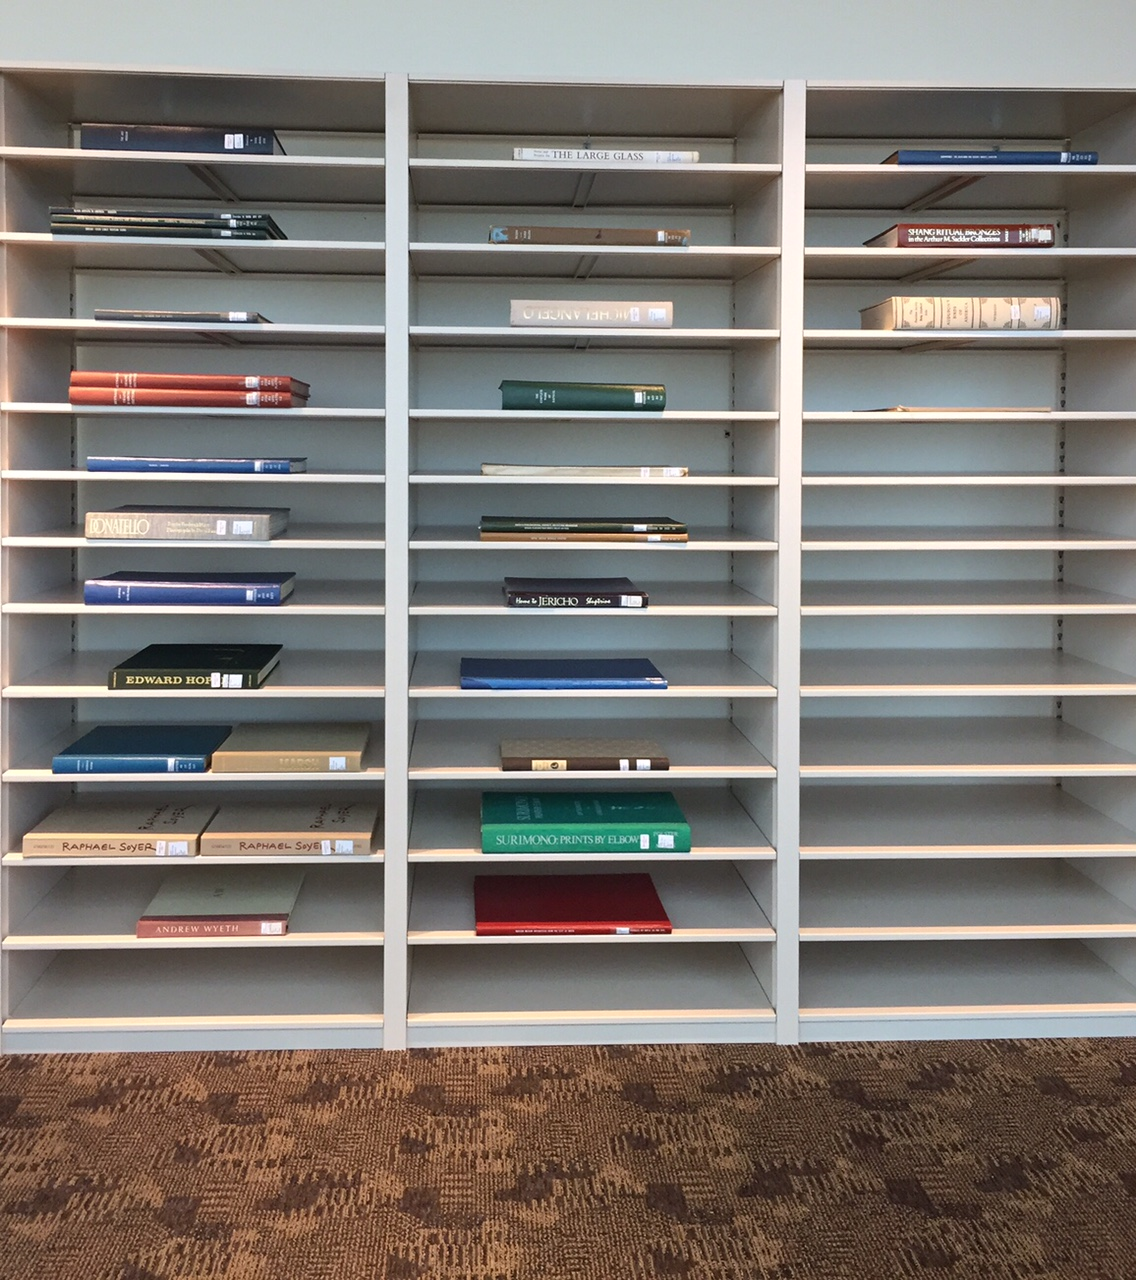 Oversize folio books stacked on a specific oversize folio shelf on the library's second floor.